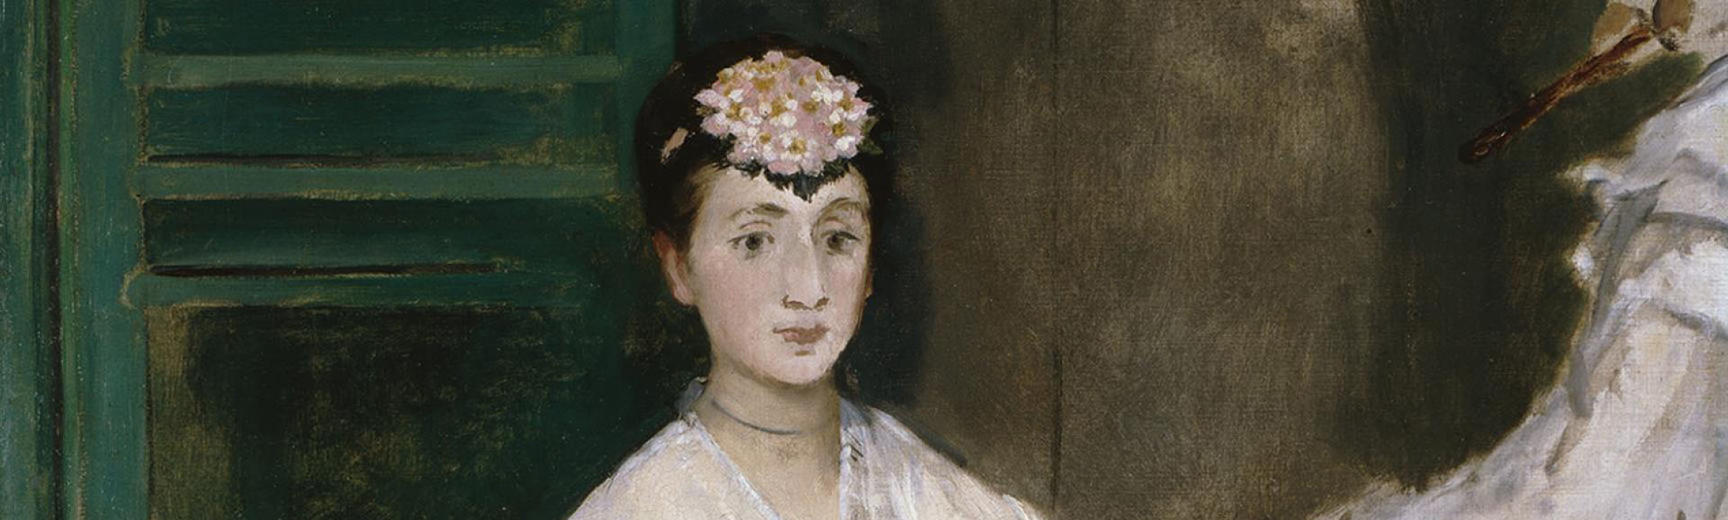 Detail from Manet's Portrait of Mademoiselle Claus